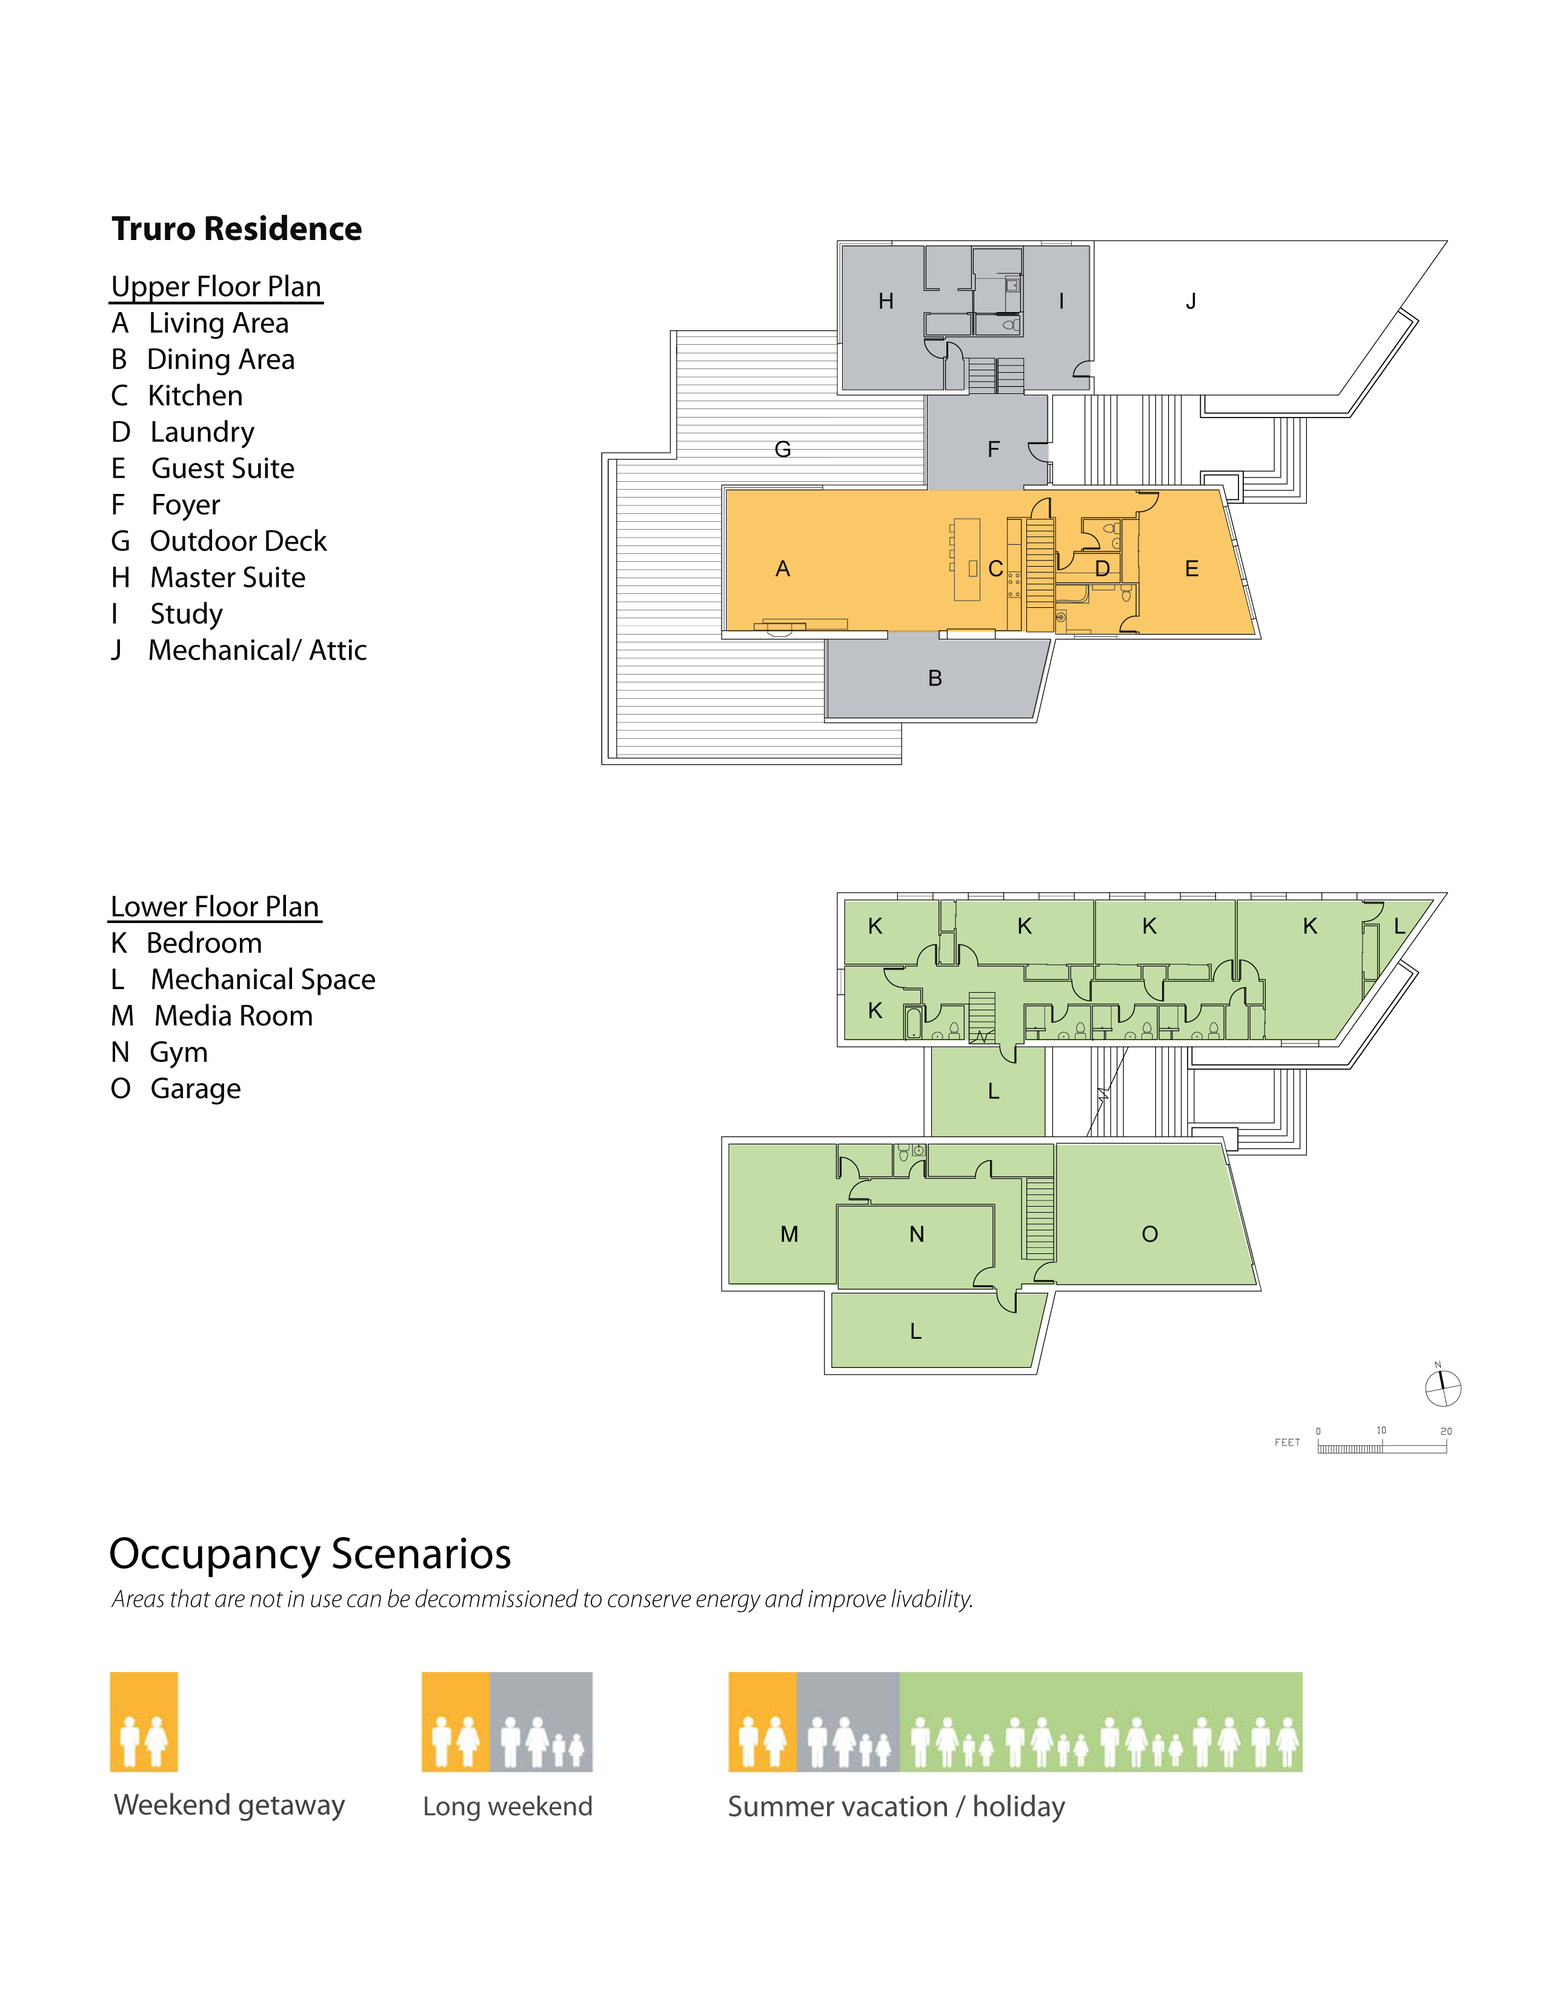 floor plans and diagram_color.ai